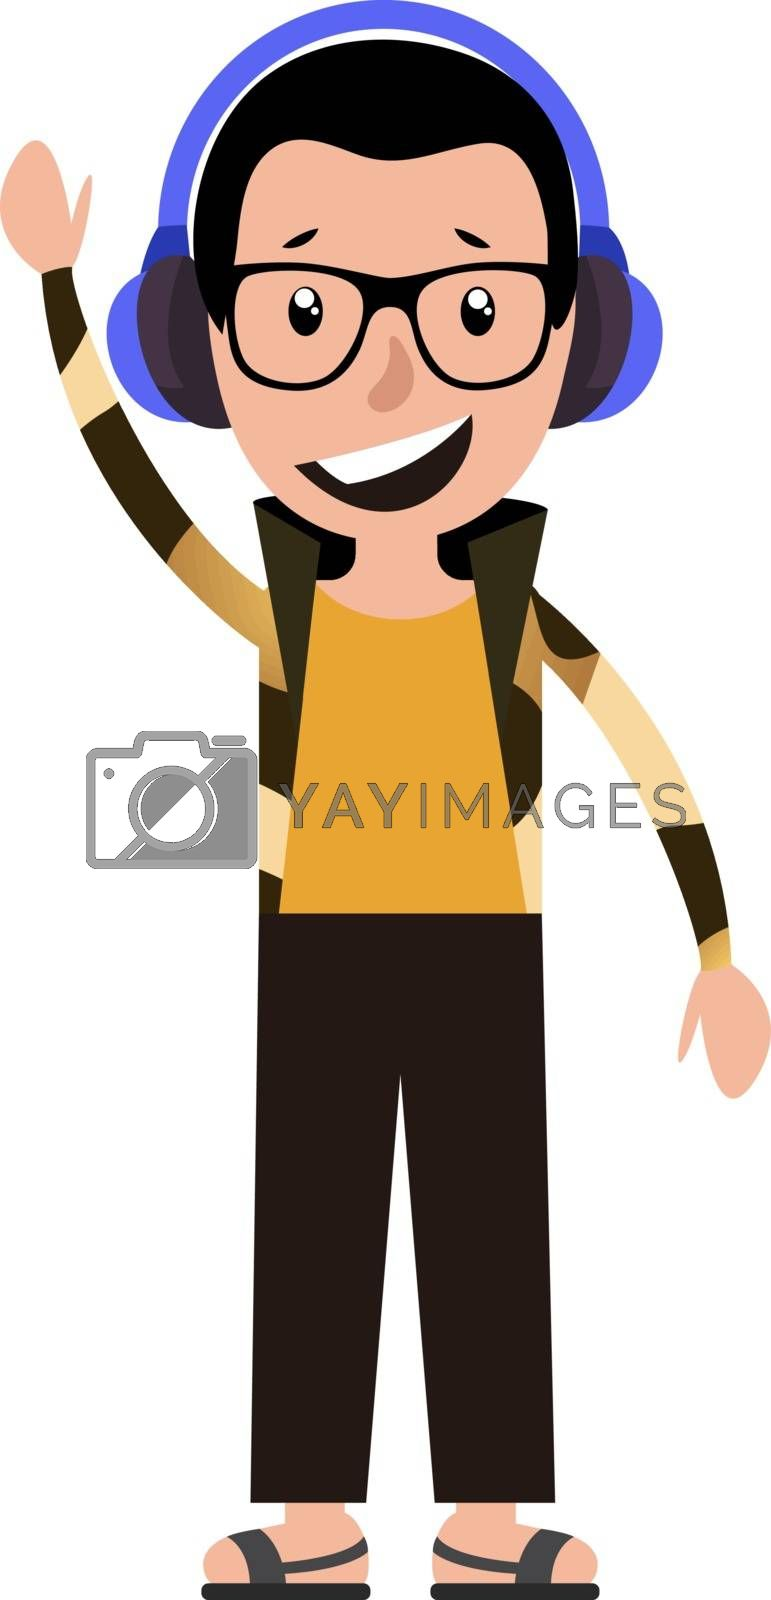 Royalty free image of Cartoon adult boy listening to music and waving illustration vec by Morphart